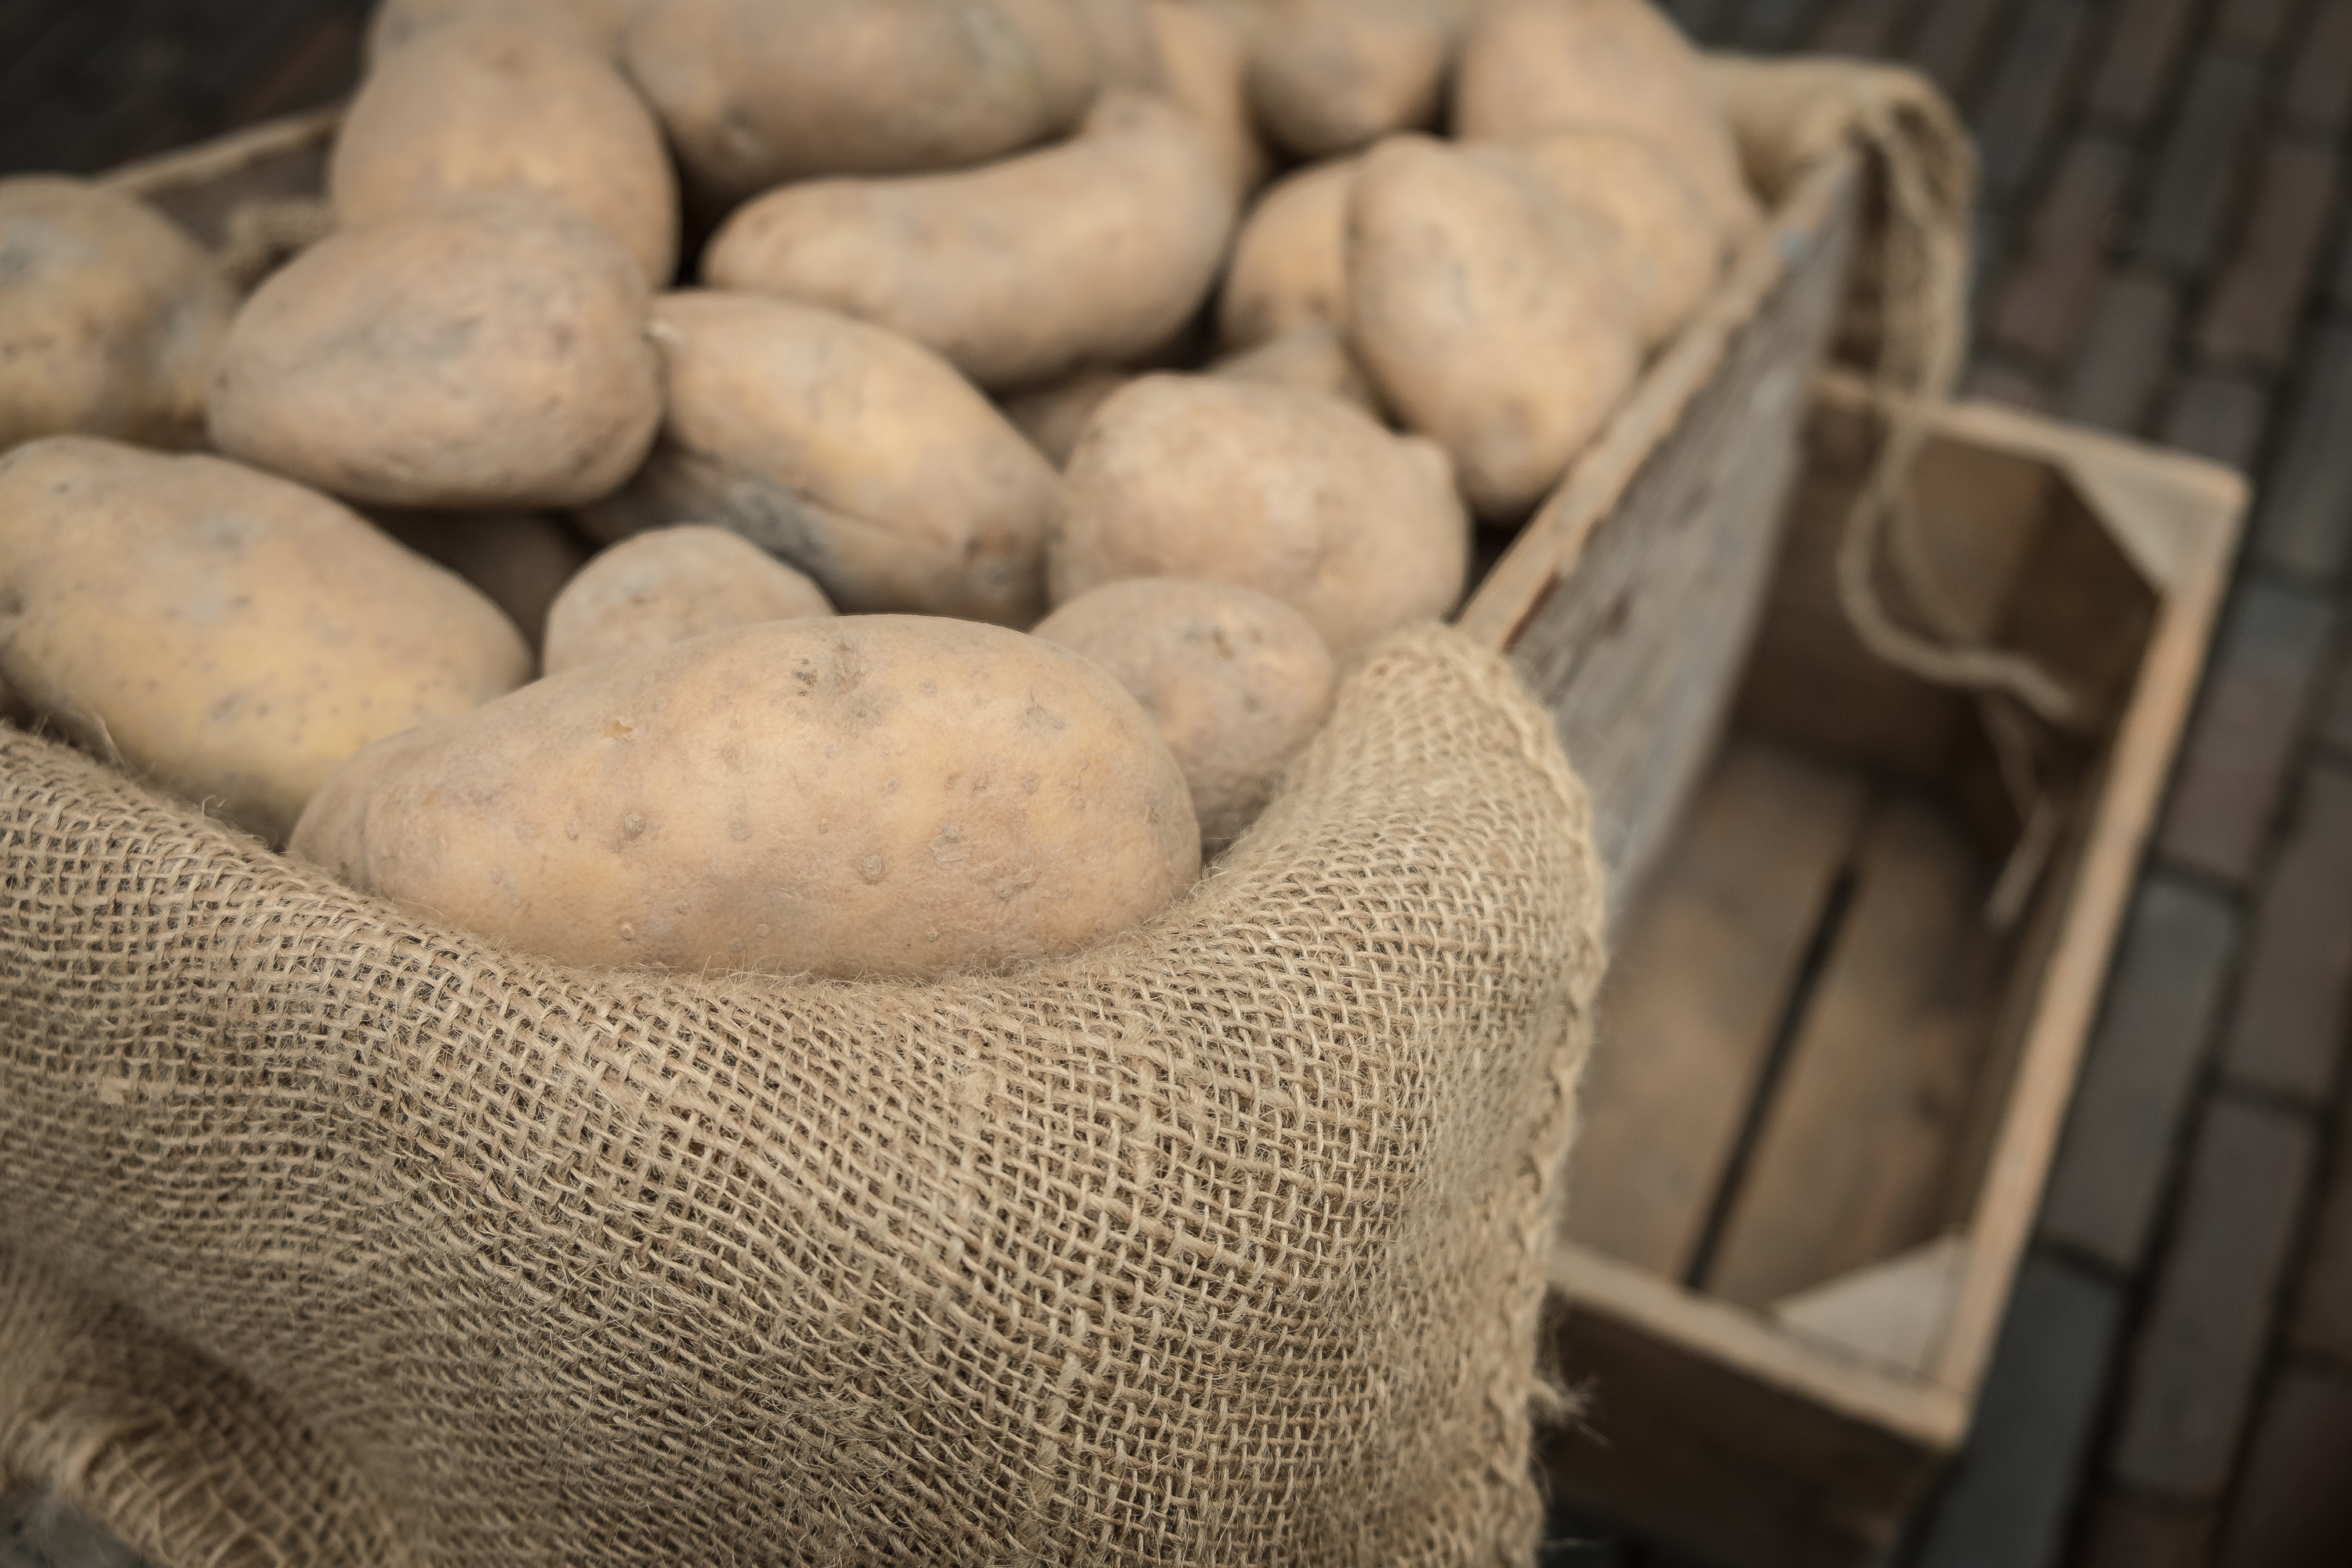 Raw potatoes in a crate